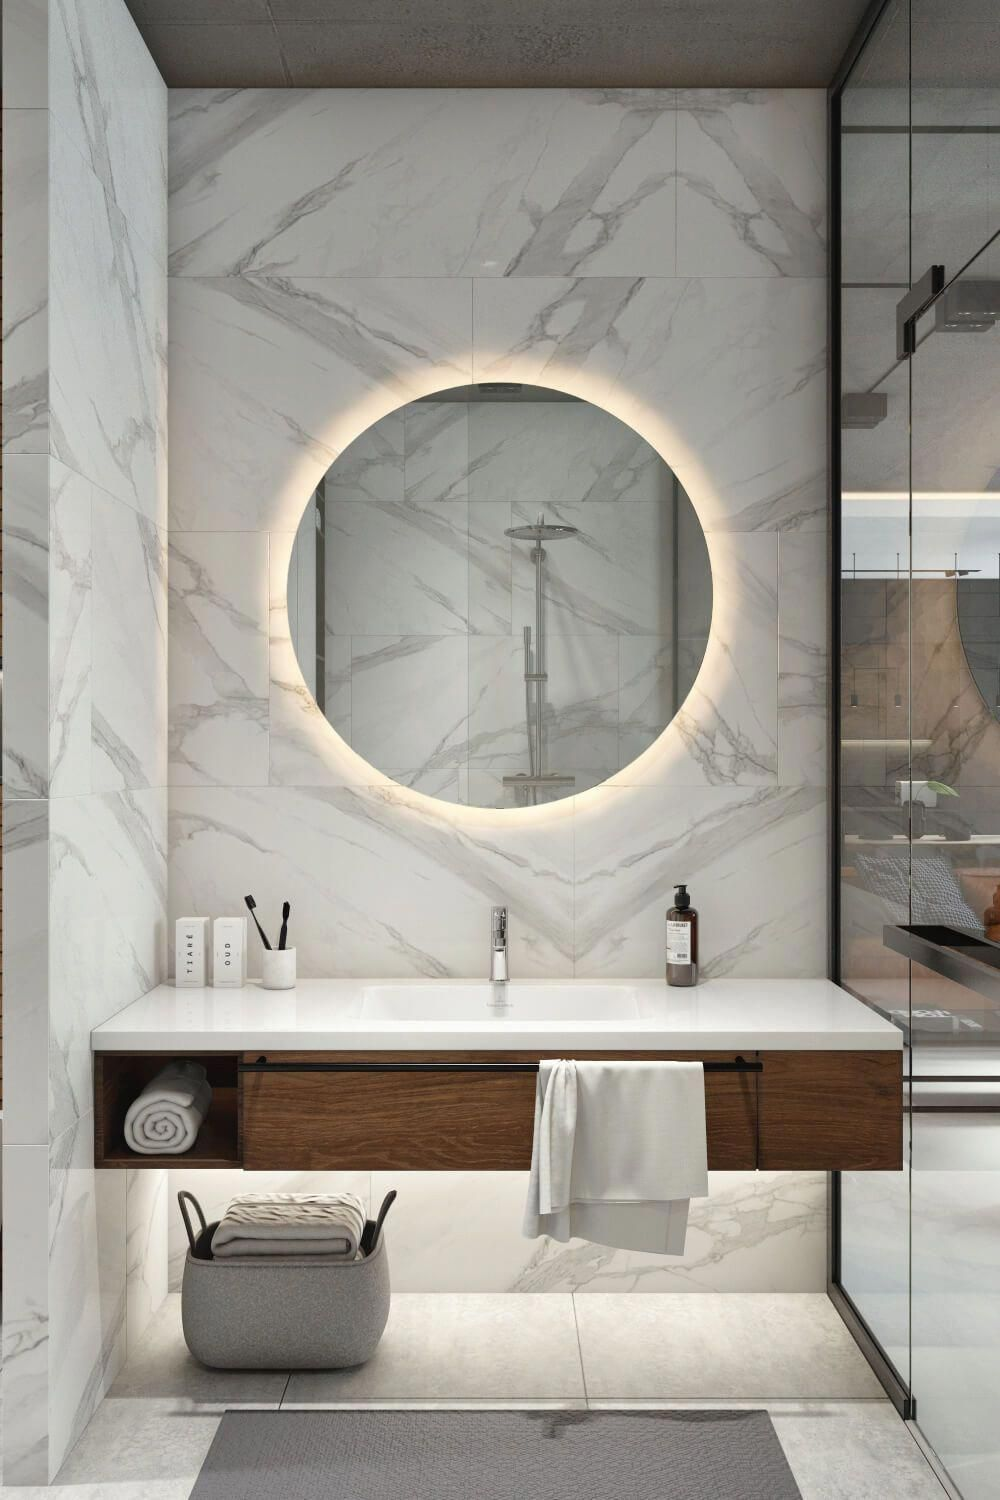 Pin On Ideas Remodeling